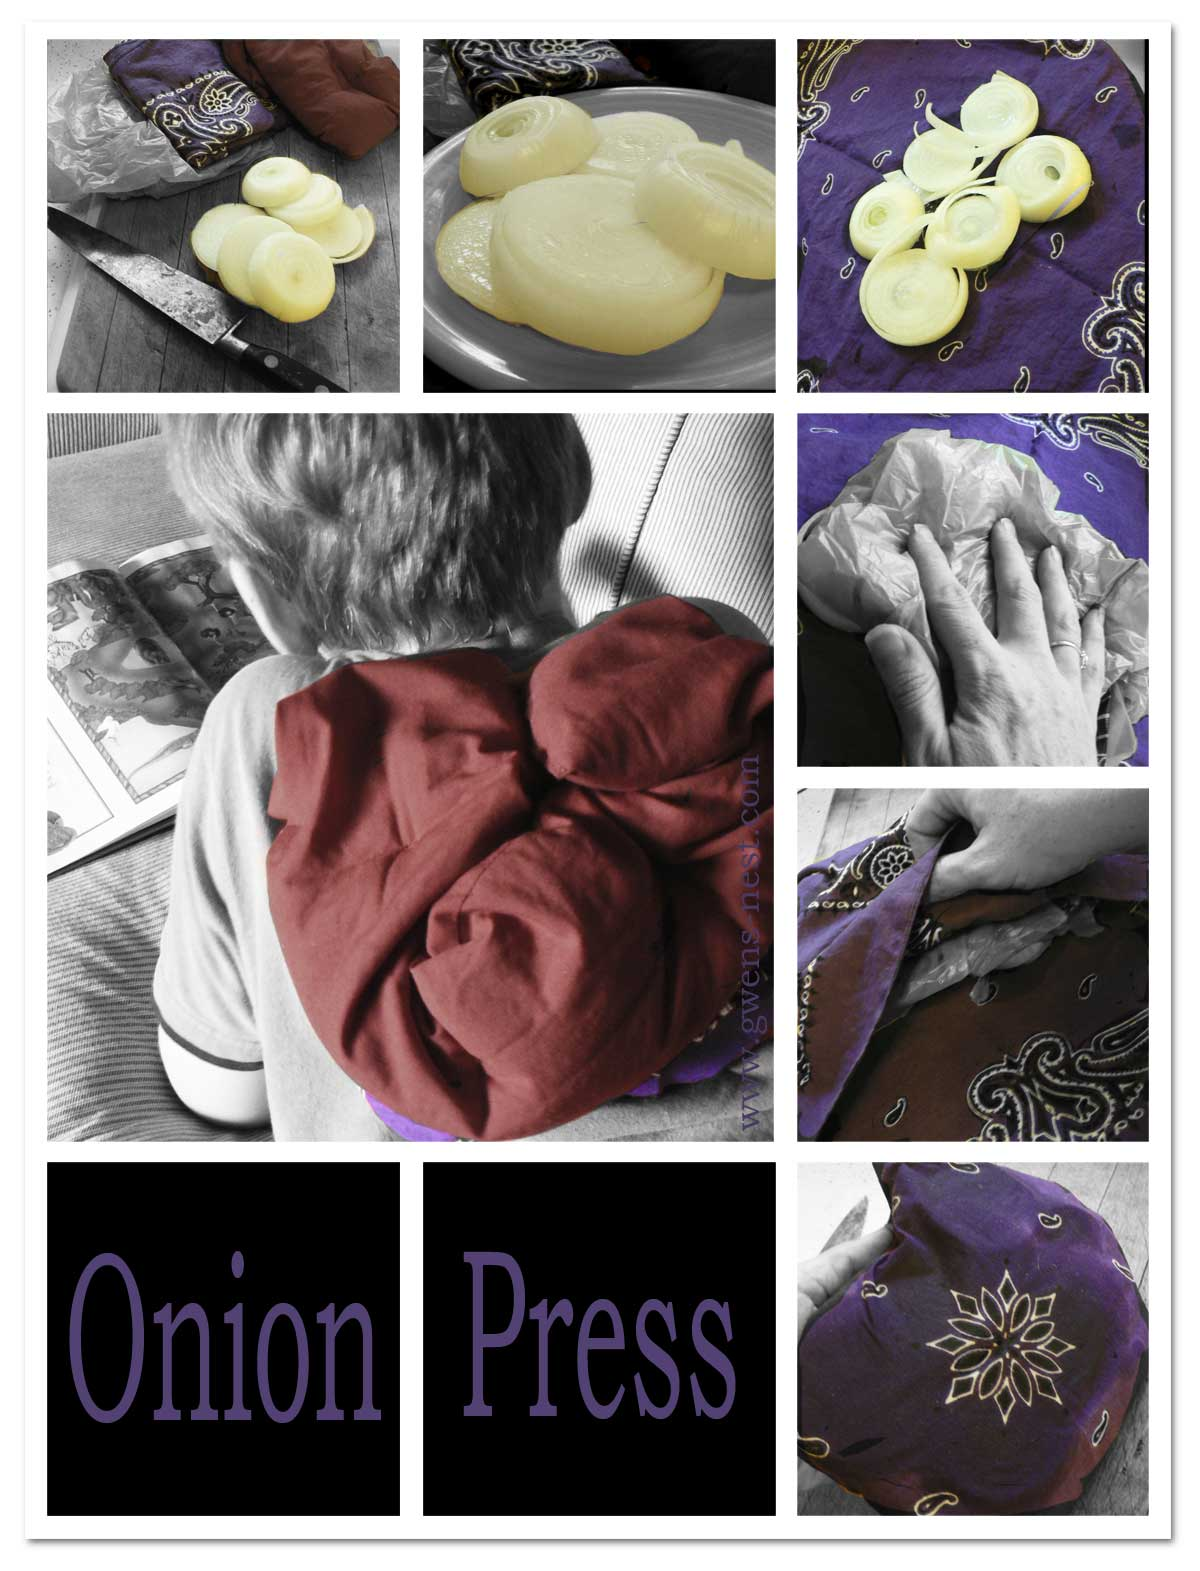 Onion remedies gwens nest lay the pack onion side down onto the persons bare chest or back and cover with a rather warm hot water bottle or warmed rice pack ccuart Gallery